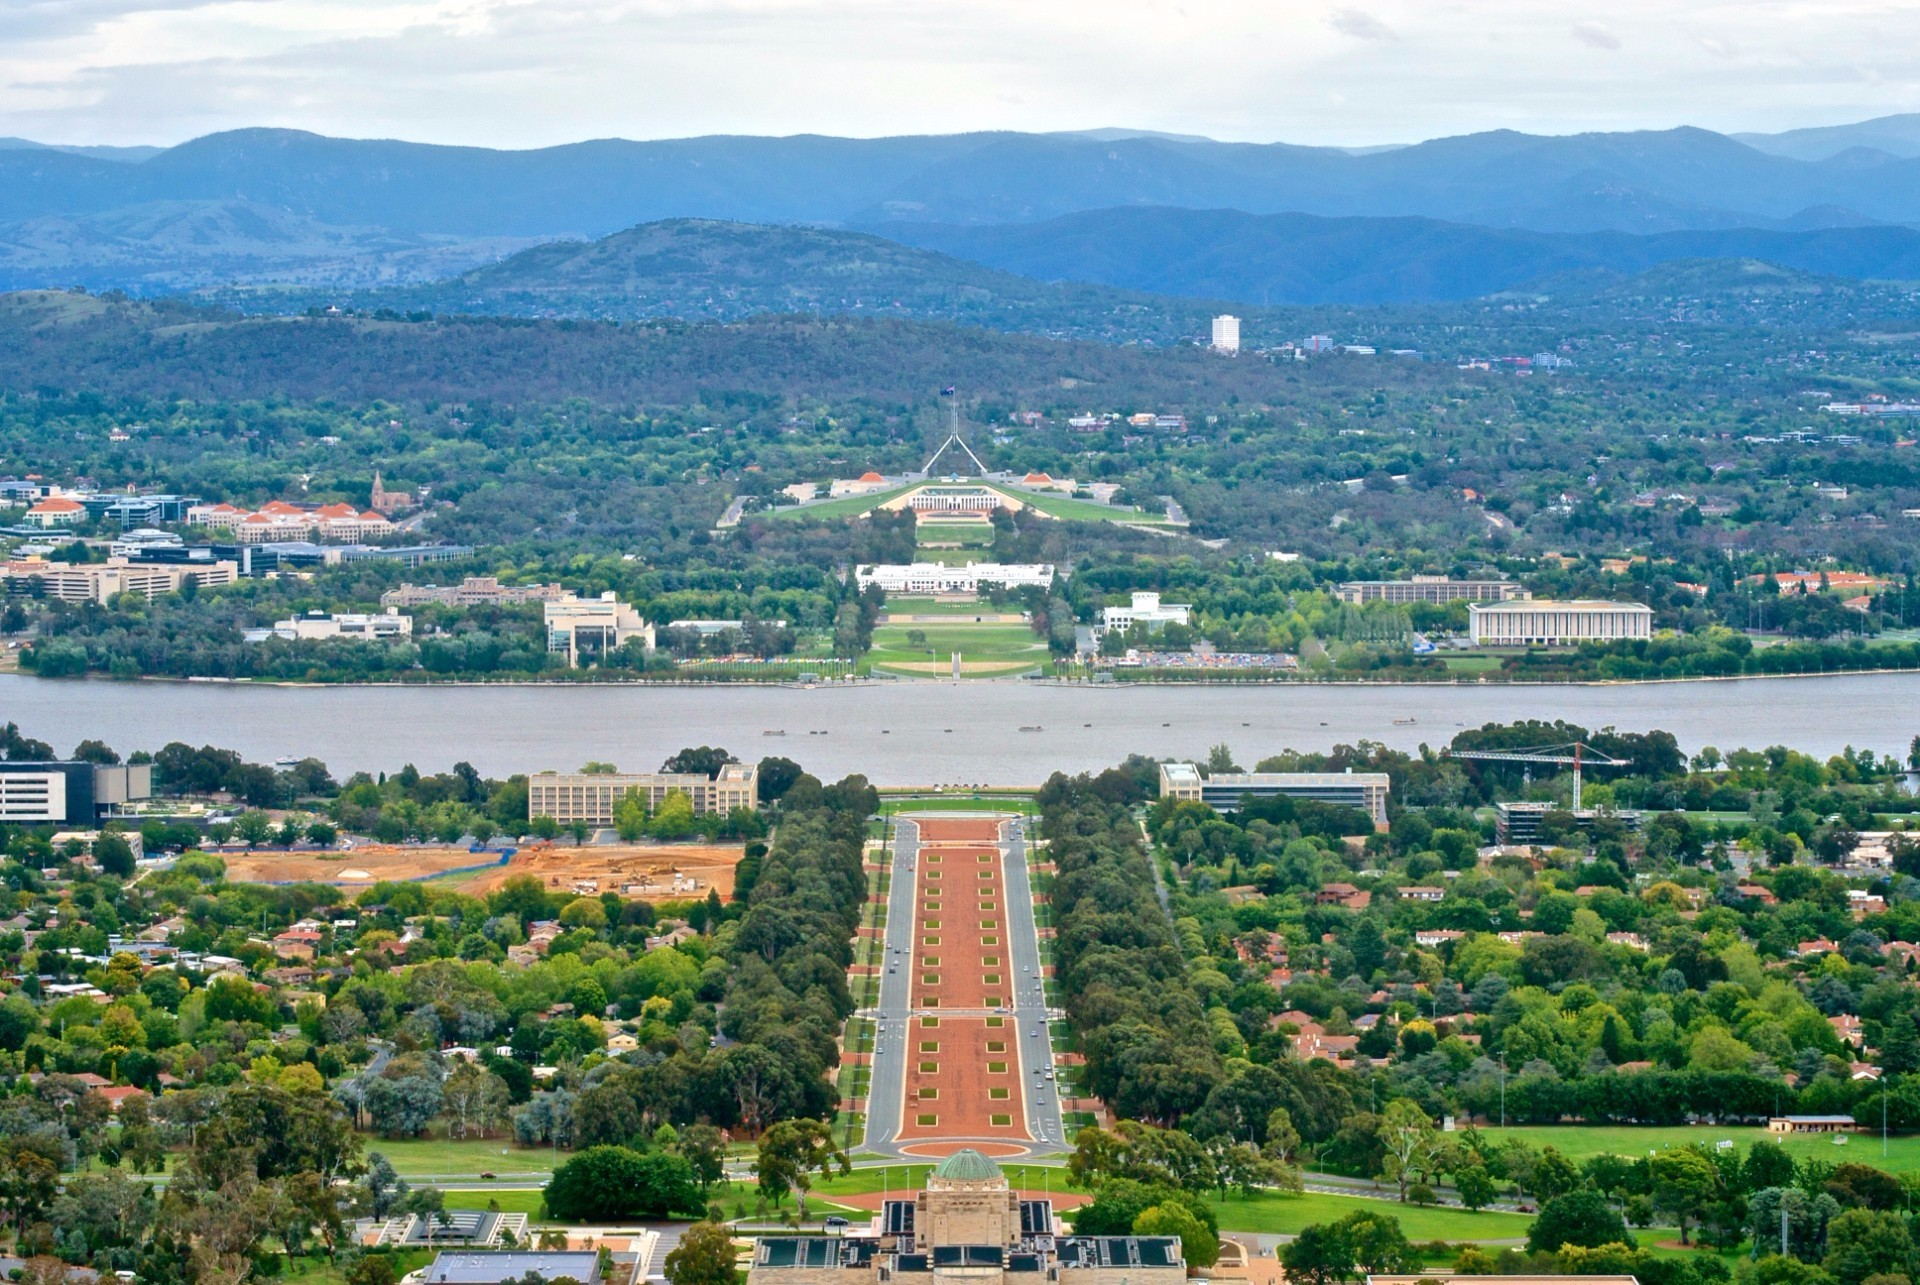 Canberra Population in 2017